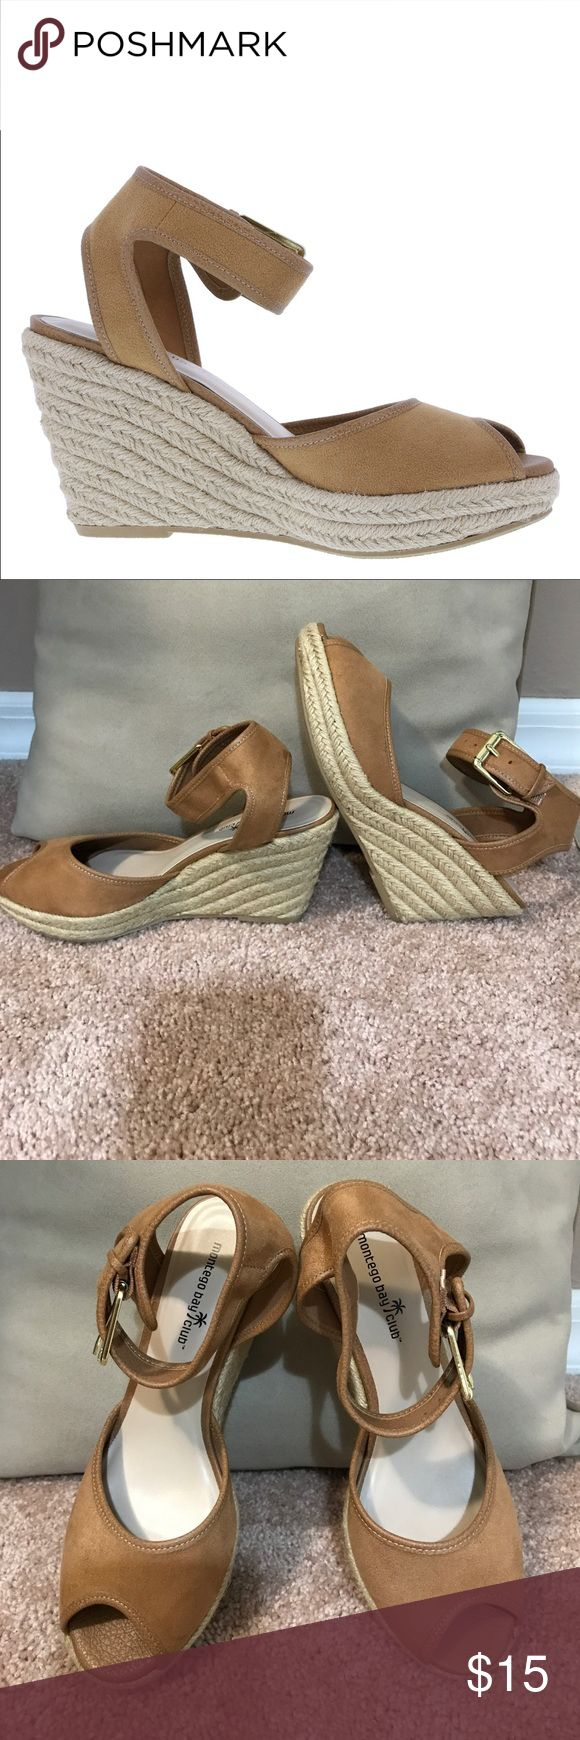 "Montego Bay Club Espadrille Wedge Sandals Light brown faux suede fabric upper on an espadrille wedge . Buckles around the ankle with gold tone hardware. Peep toe . 1"" platform 3.5"" heel. Montego Bay Club Shoes Wedges"